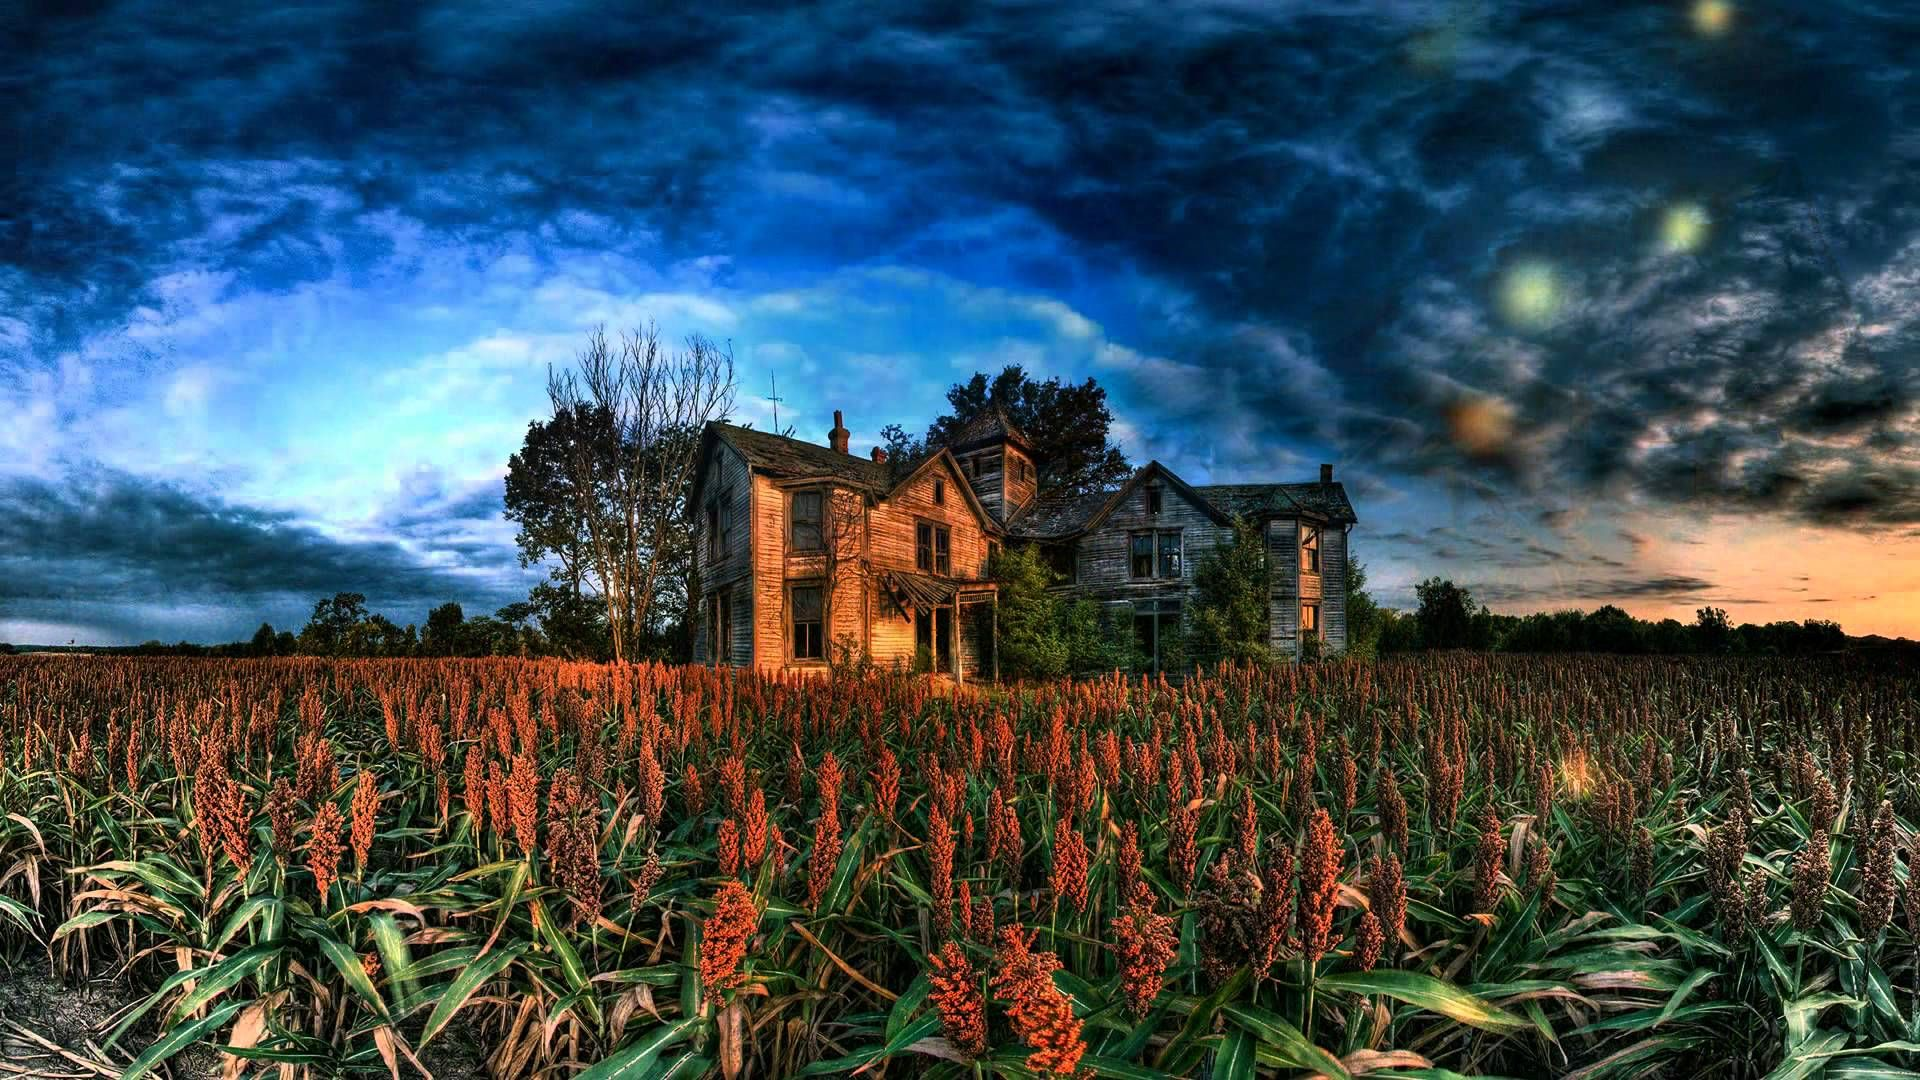 Abandoned farm houses image by Ruth Yaap on Japanese Music